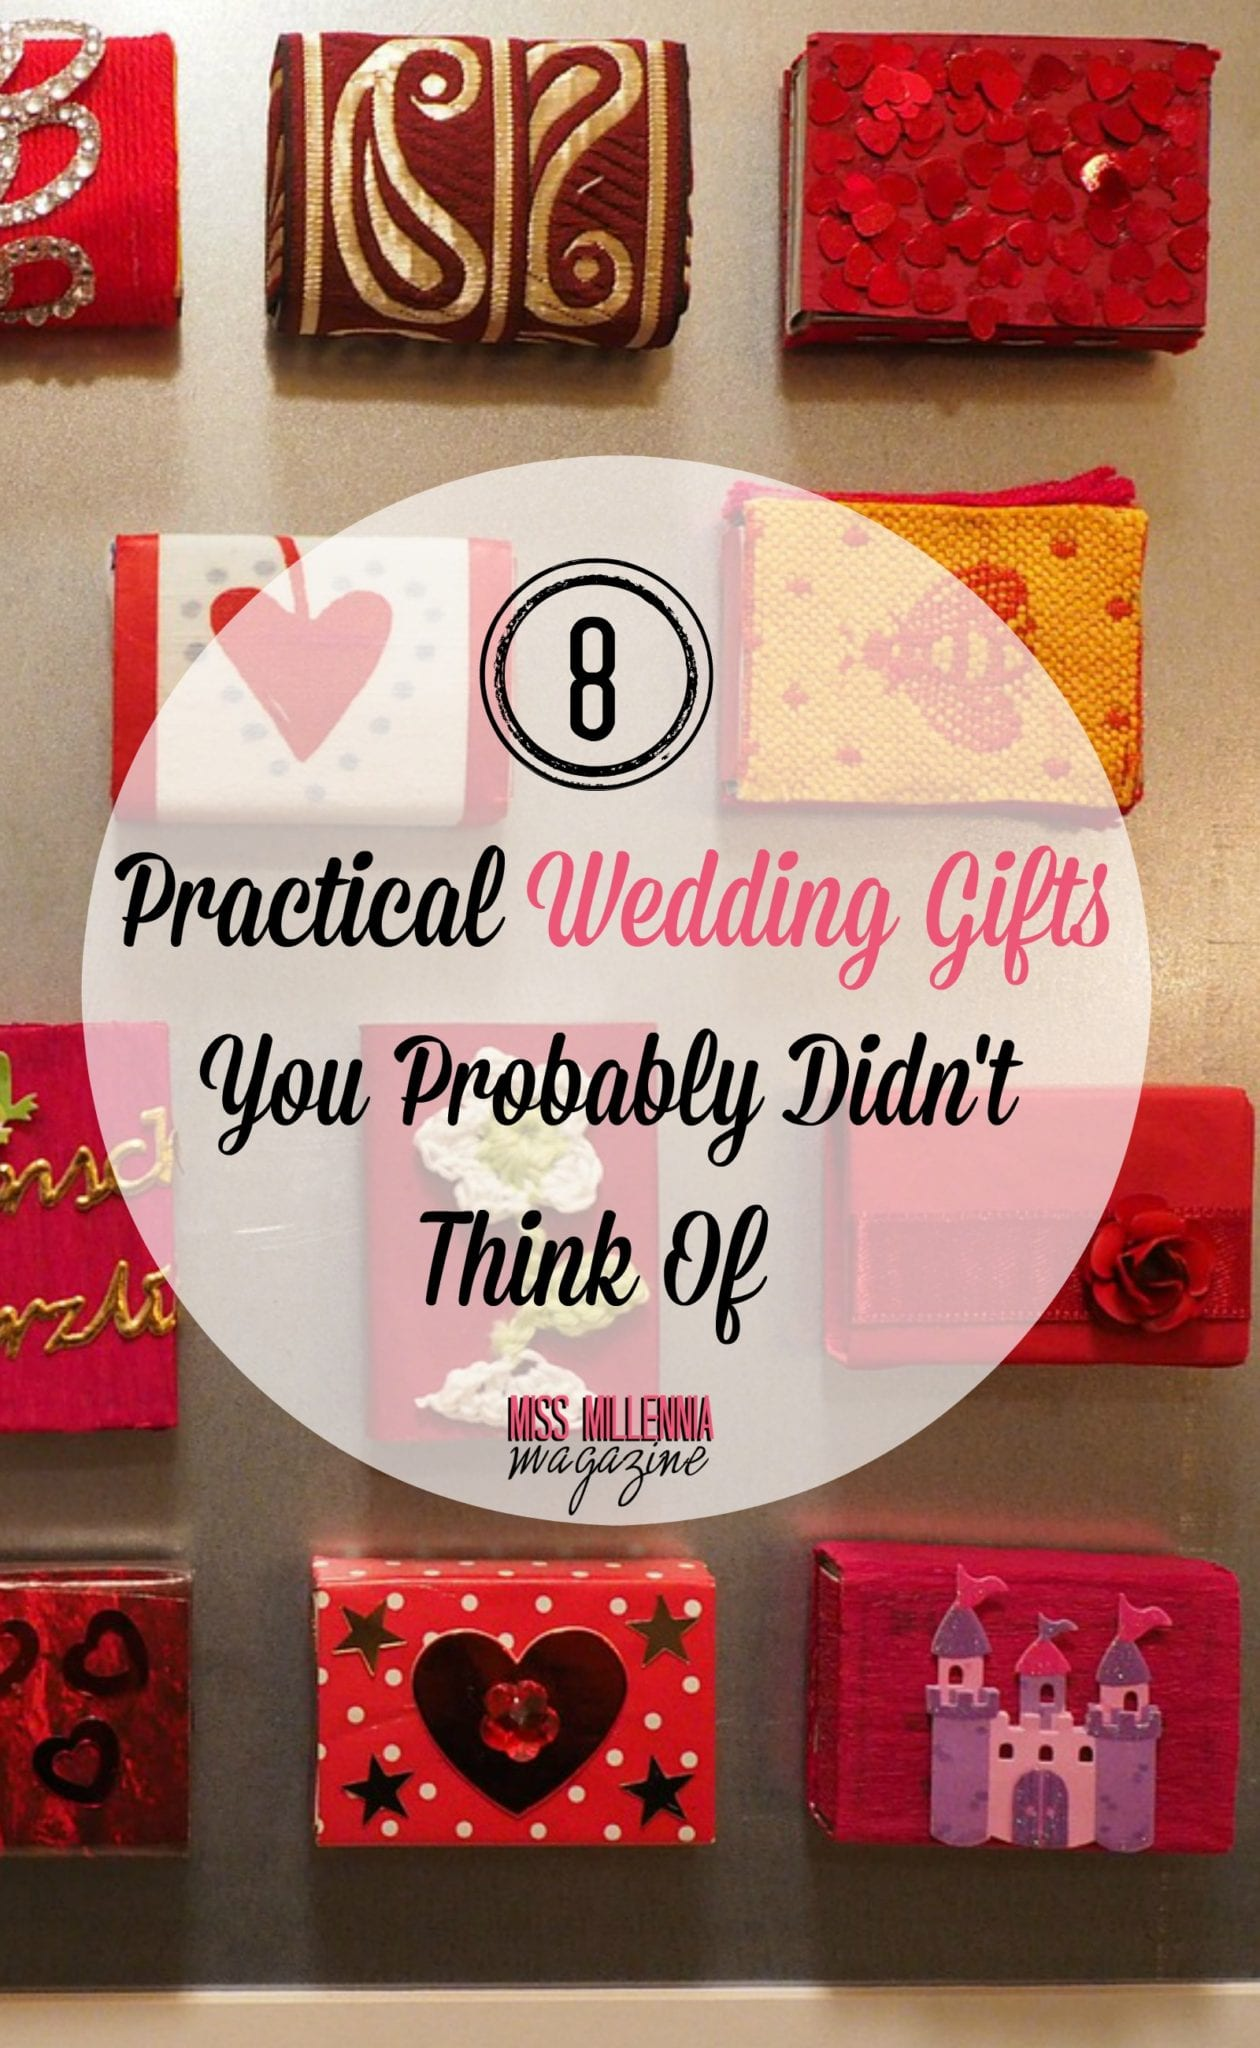 Wedding Gift Ideas Practical : Ideas Practical Wedding Gift 8 practical wedding gifts you probably ...